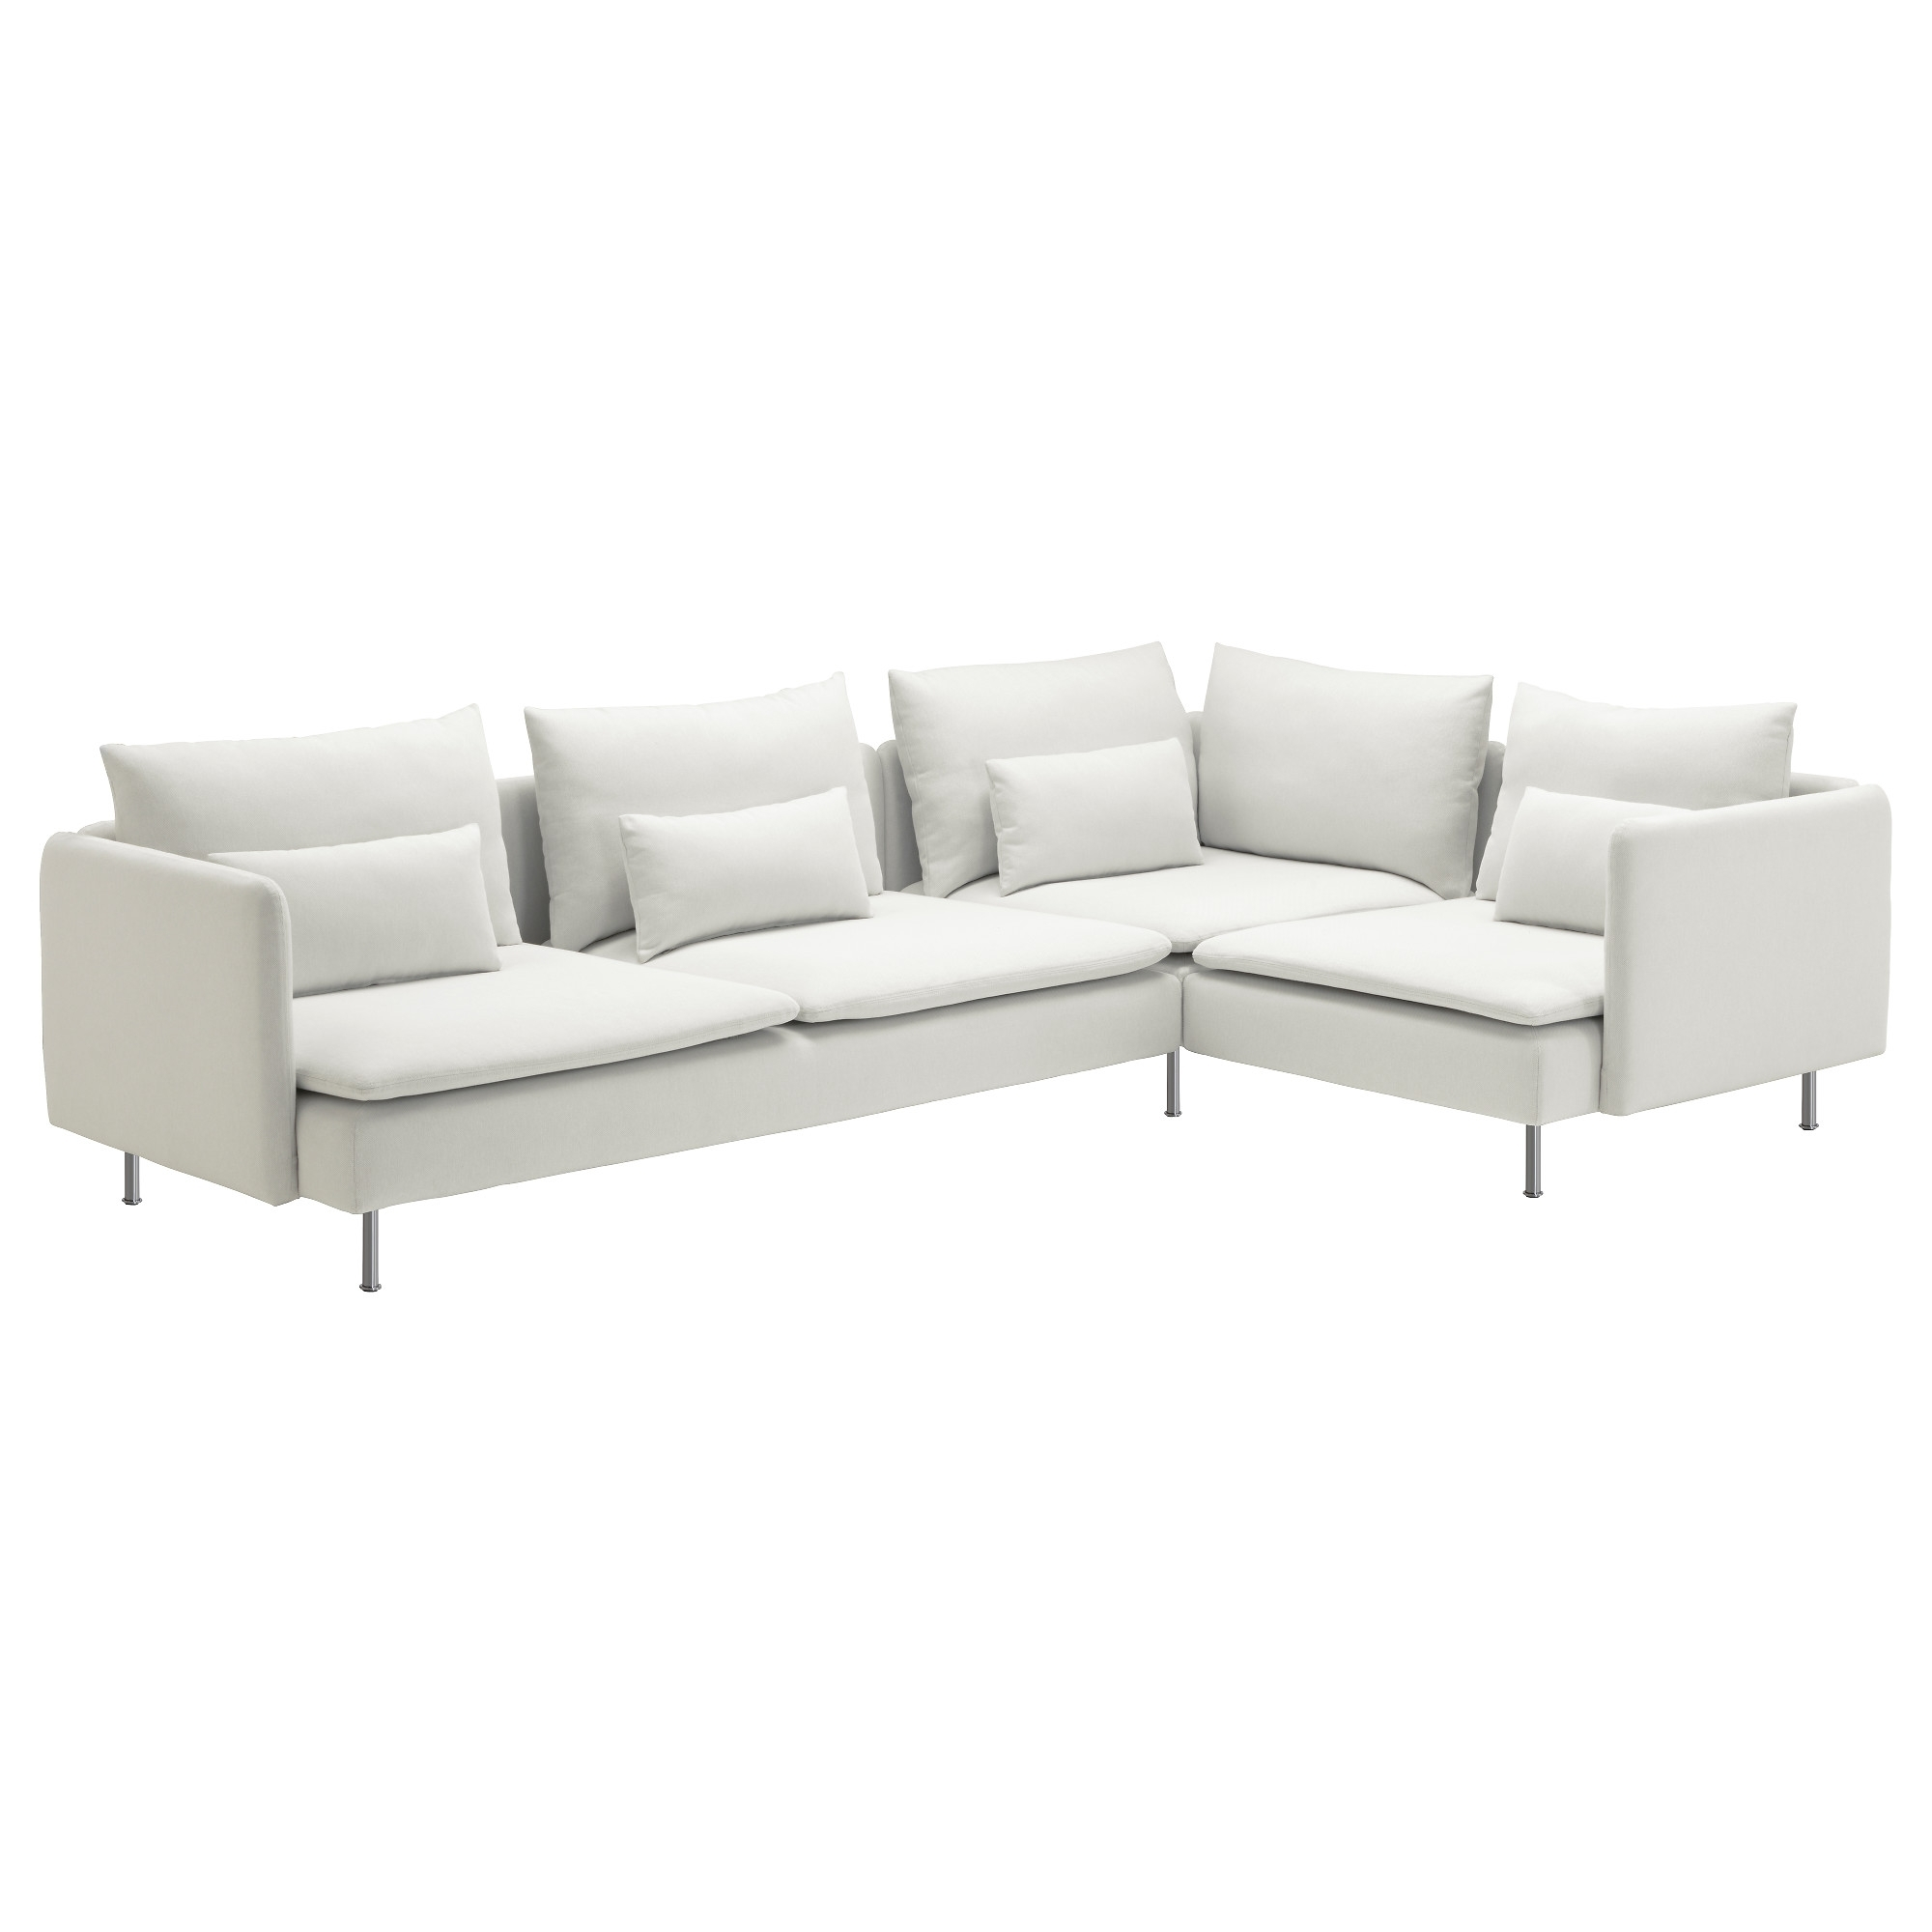 4 Seat Sofas Intended For Most Popular Söderhamn Sectional, 4 Seat Corner – Samsta Light Pink – Ikea (Gallery 13 of 20)